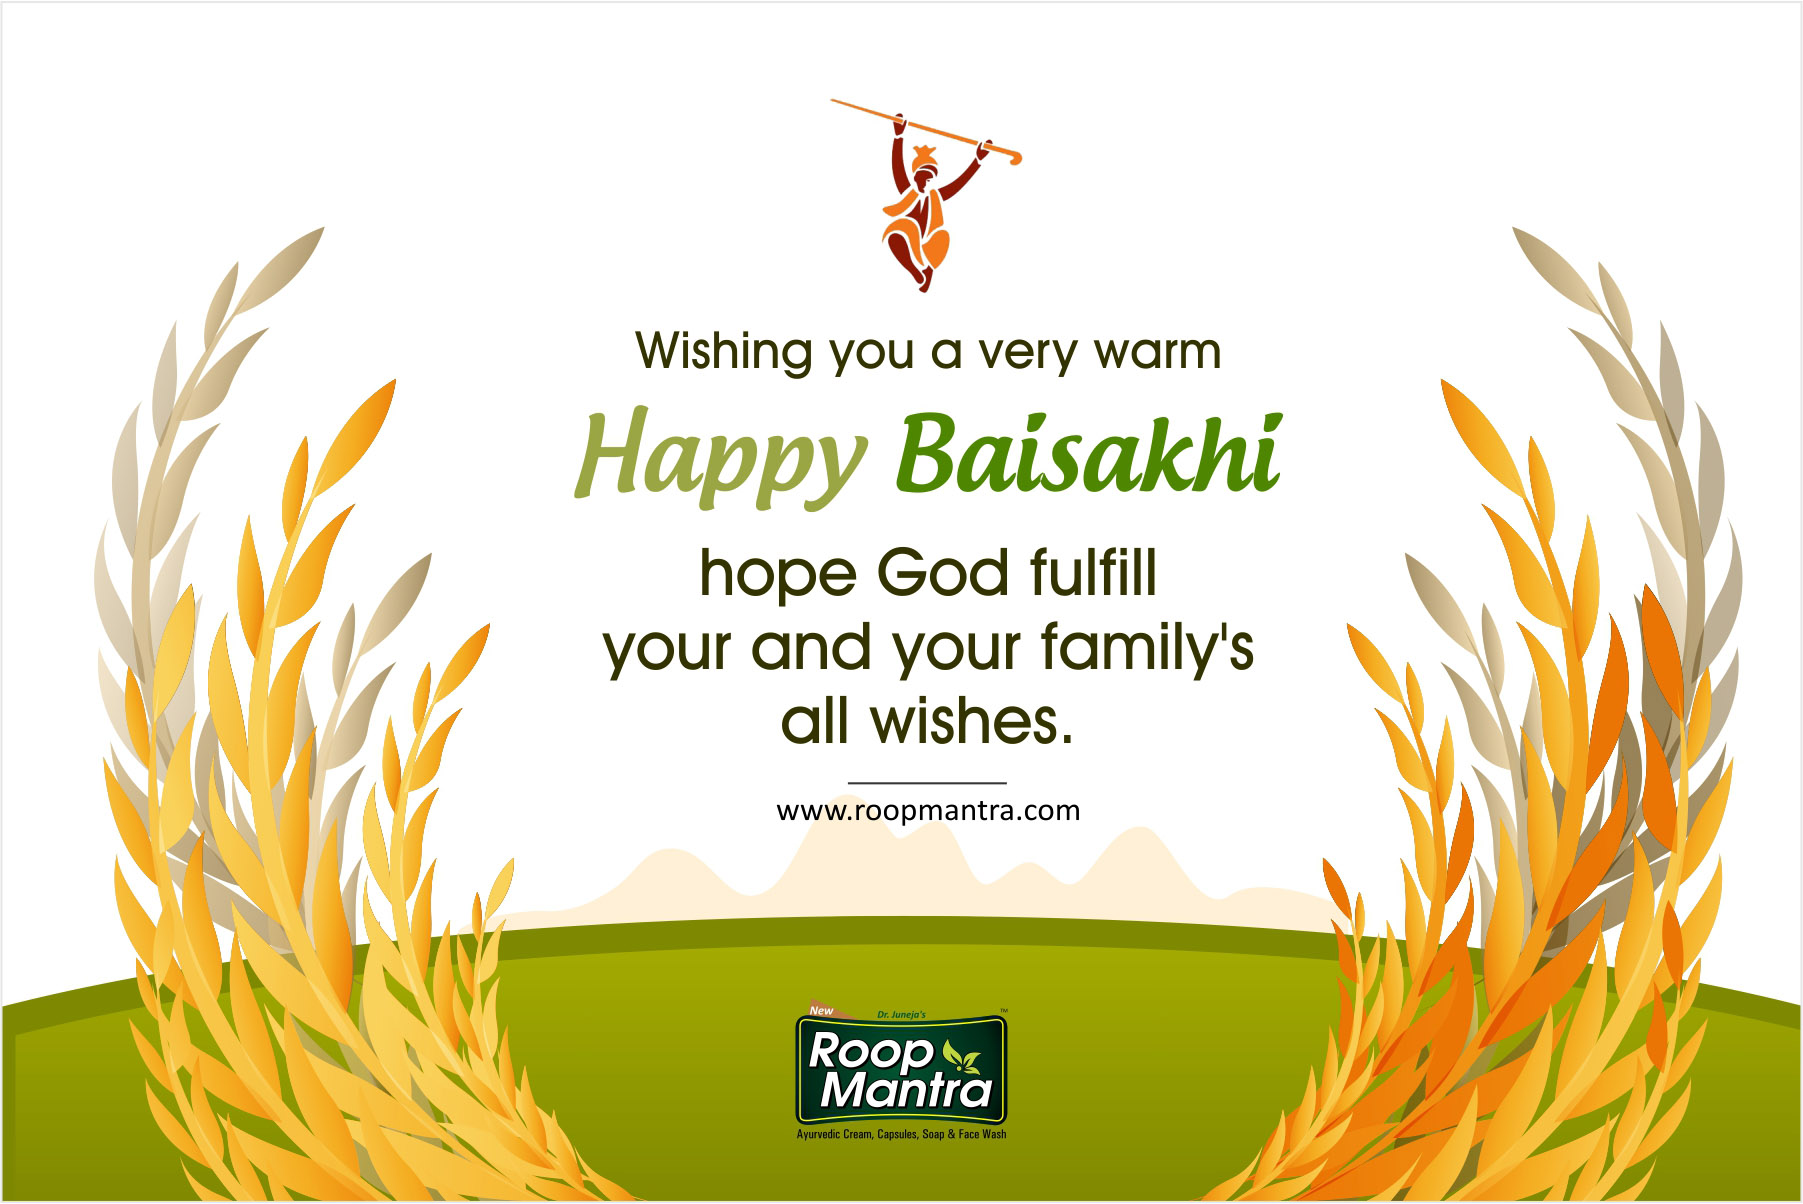 13 April 2018, Baisakhi Day, Roop Mantra, Indian Festival